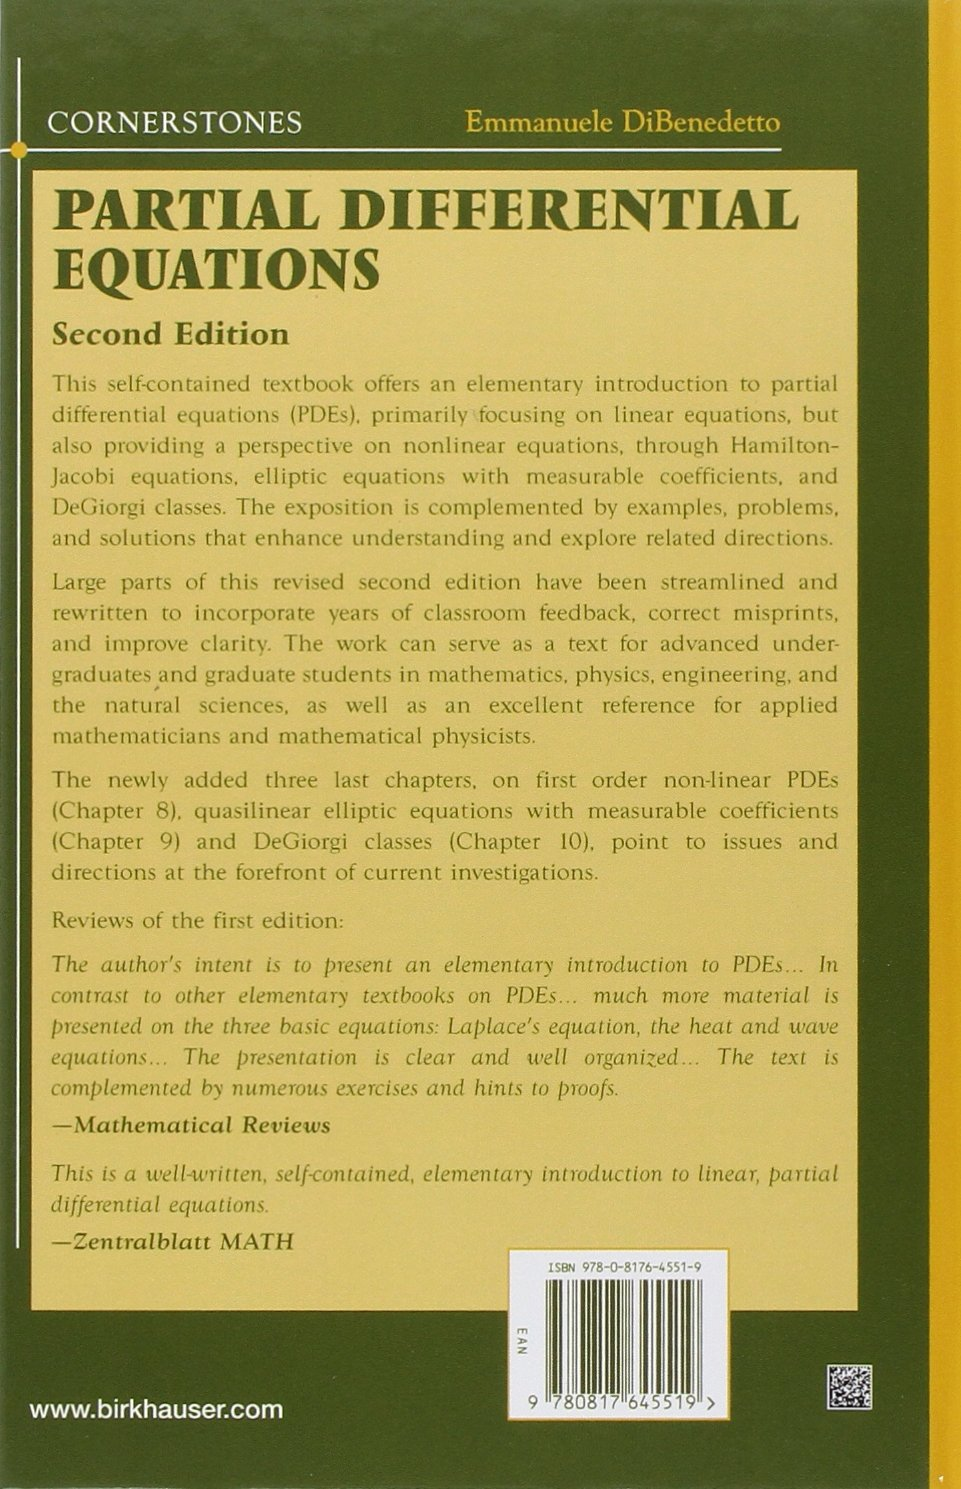 Buy Partial Differential Equations: Second Edition (Cornerstones